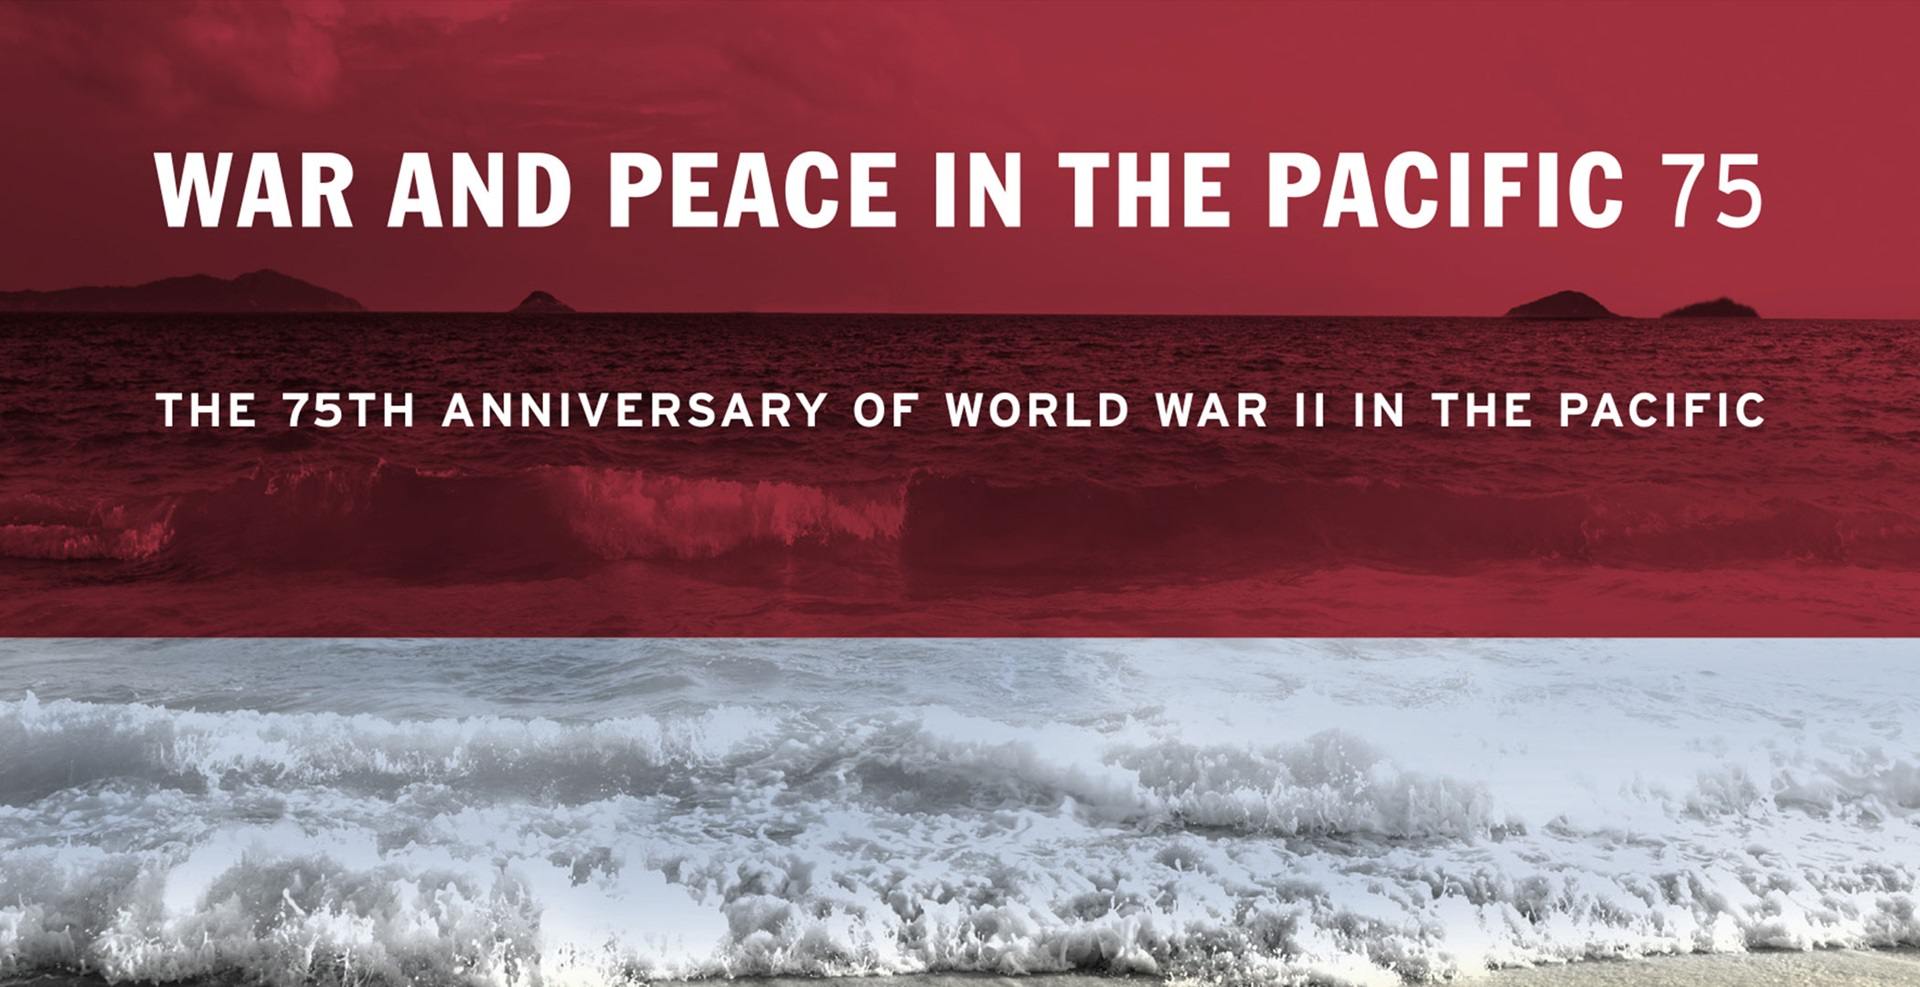 War and Peace in the Pacific 75: The 75th anniversary of World War II in the Pacific